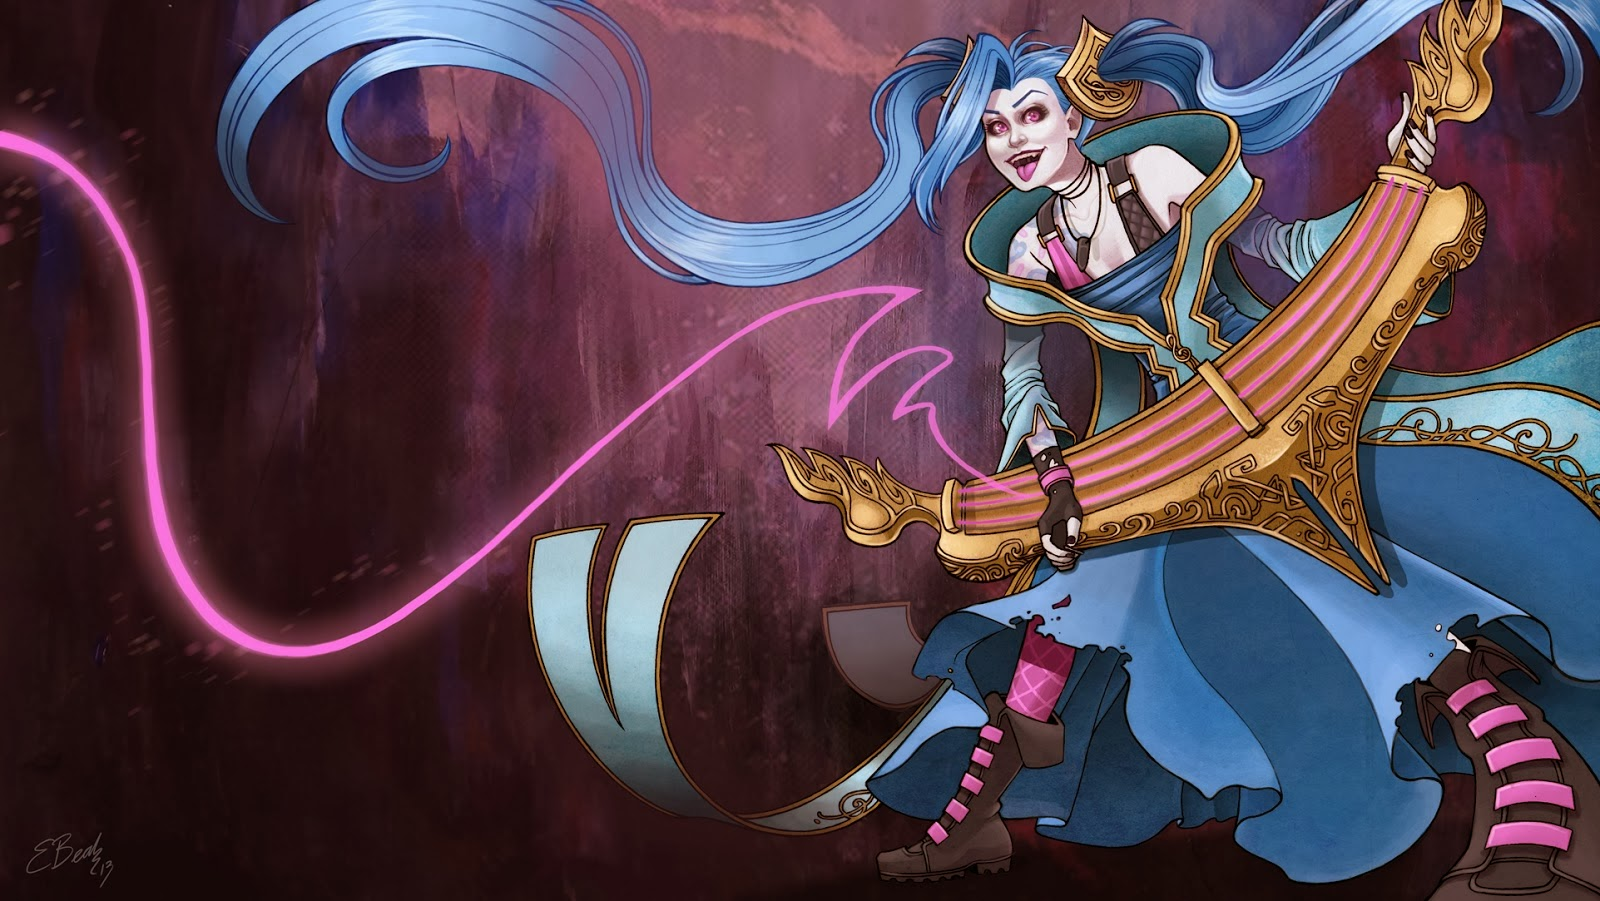 Jinx Wallpaper League Of Legends Jinx League of Legends Wallpaper Jinx Desktop Wallpaper